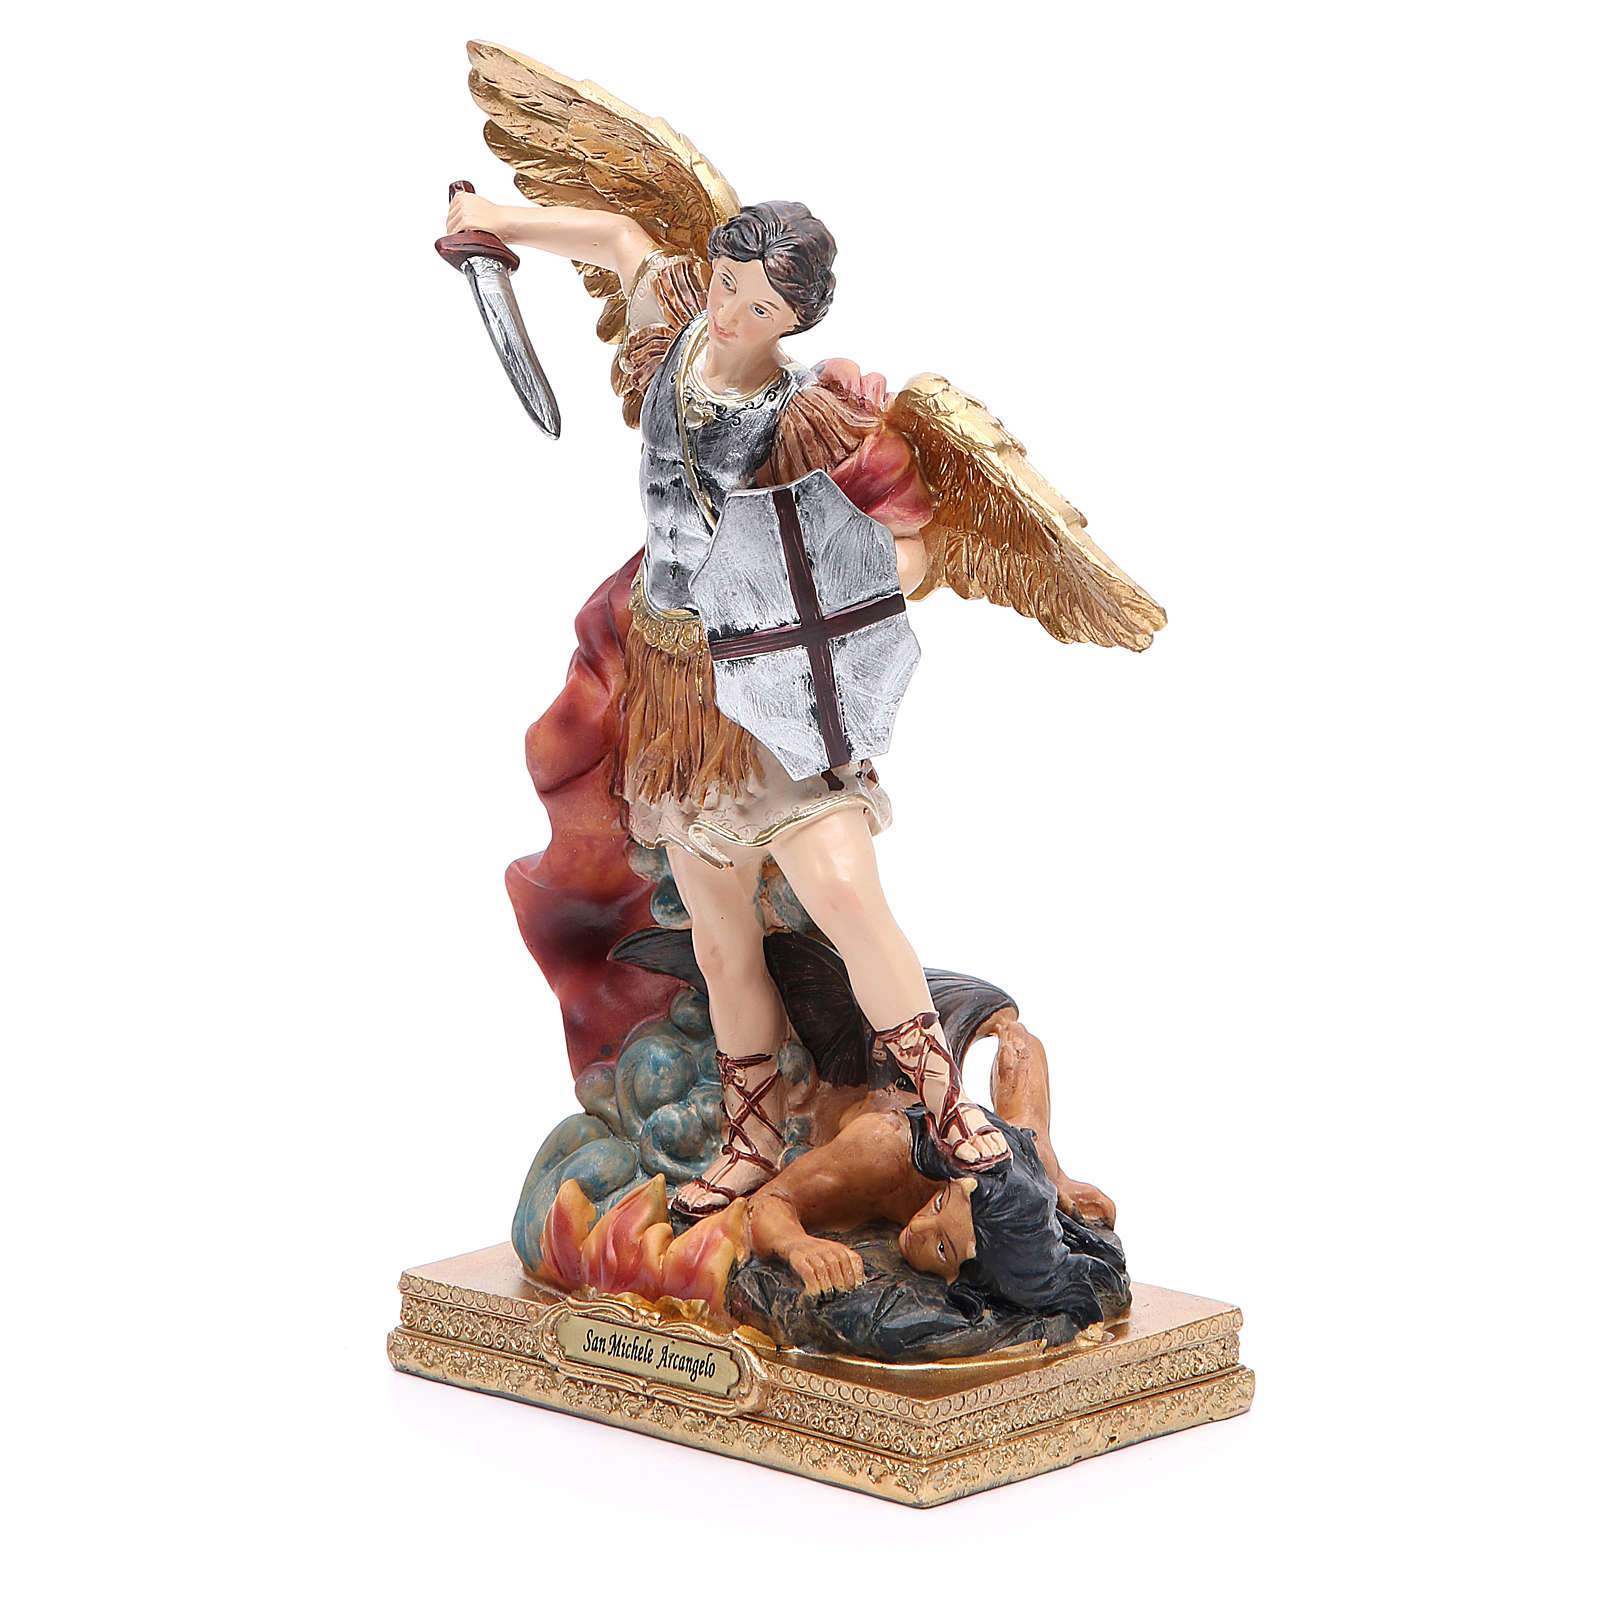 St Michael archangel resin statue 8.5 inches 4